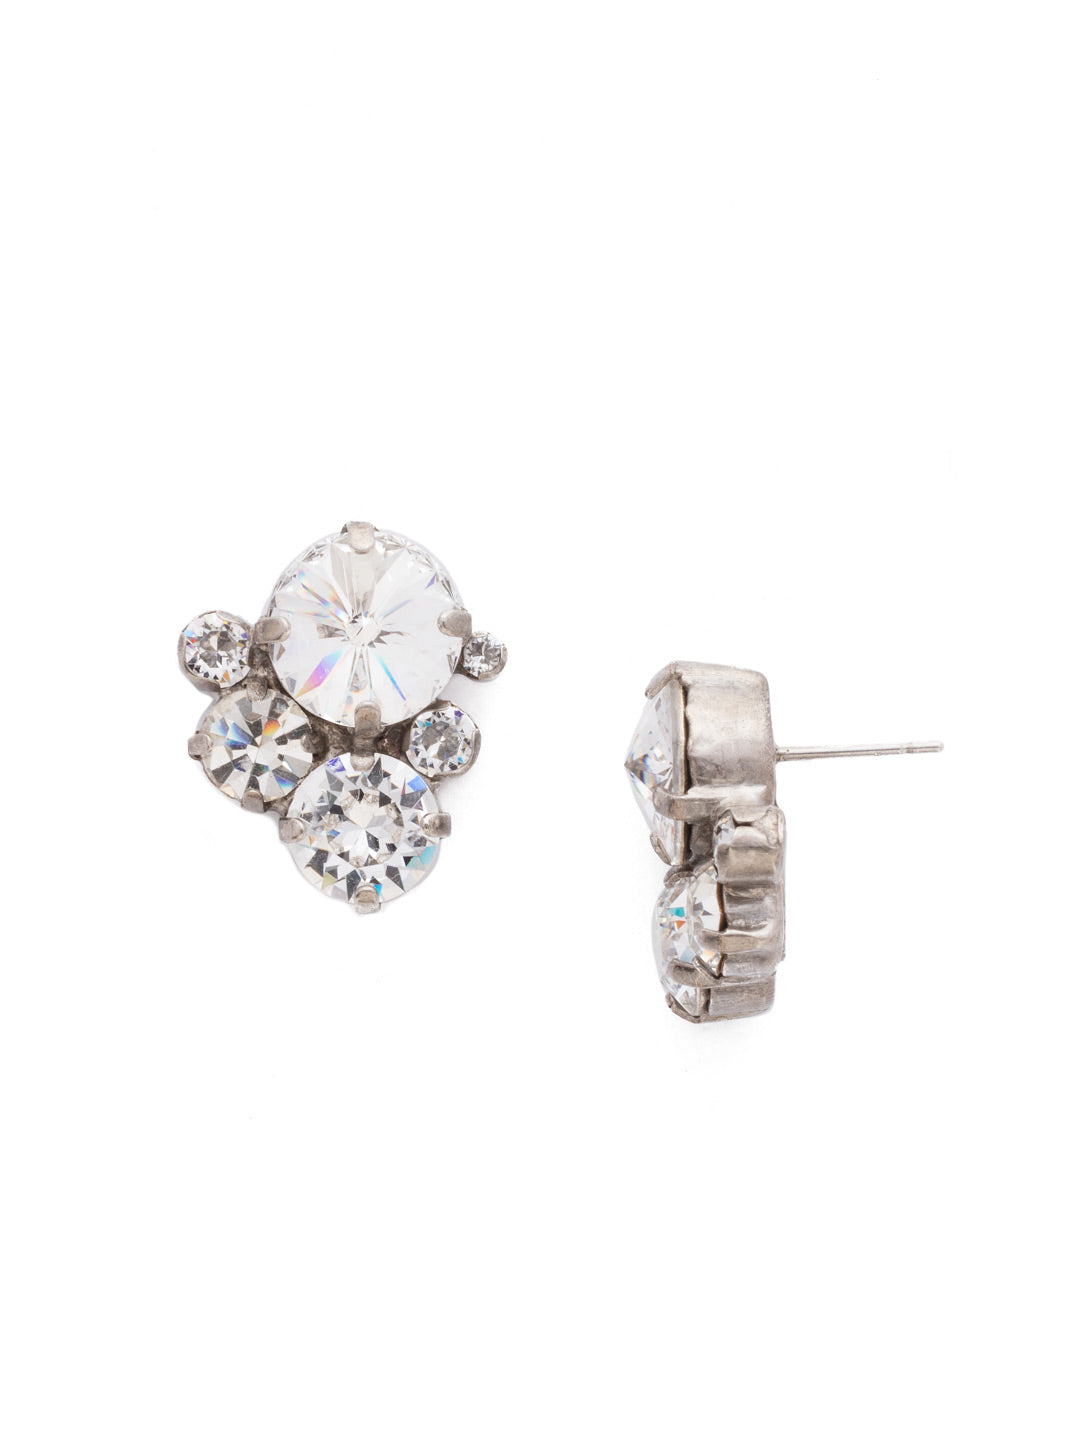 Crystal Assorted Rounds Post Earring - EDB11ASCRY